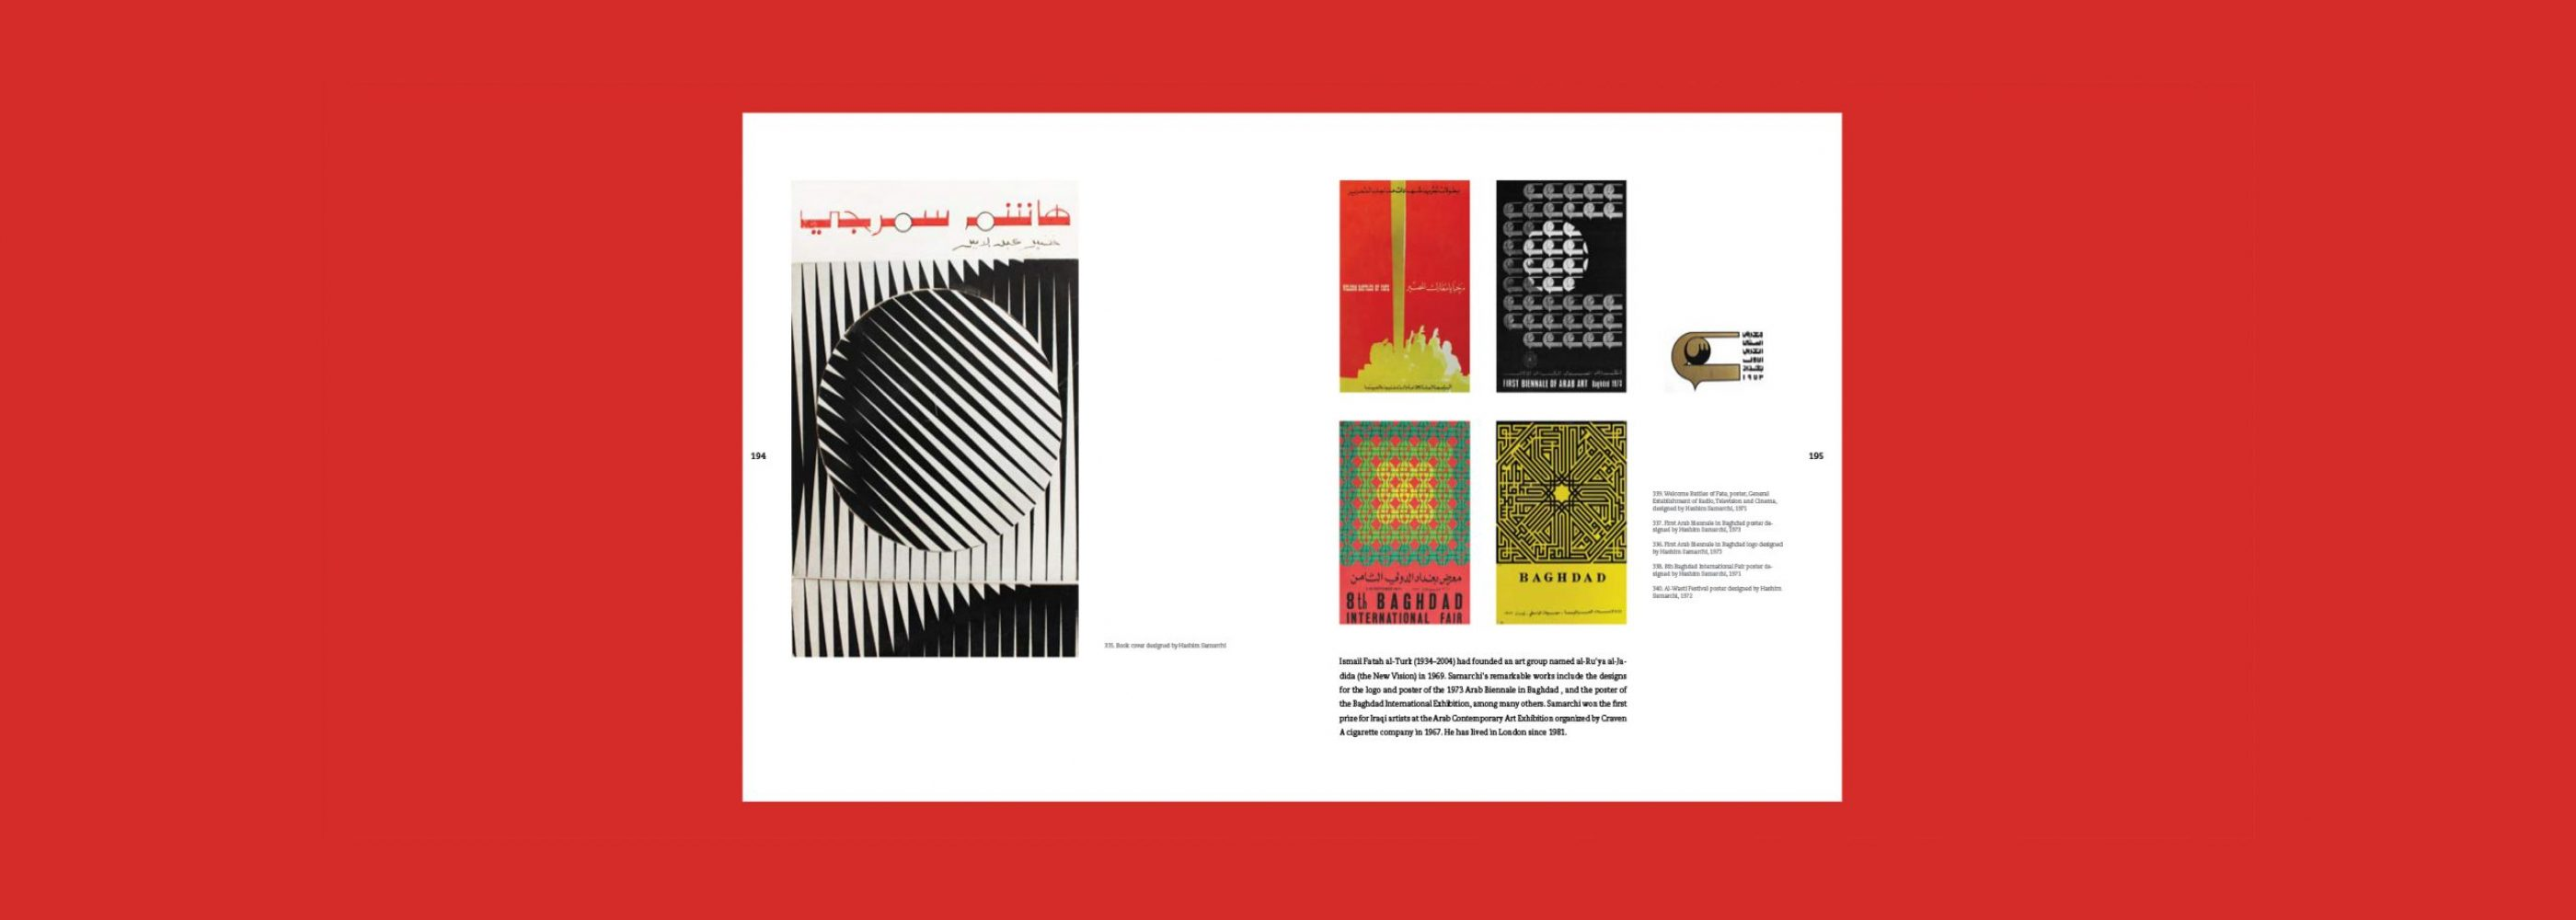 a-history-arab-graphic-design_0008_Background copy